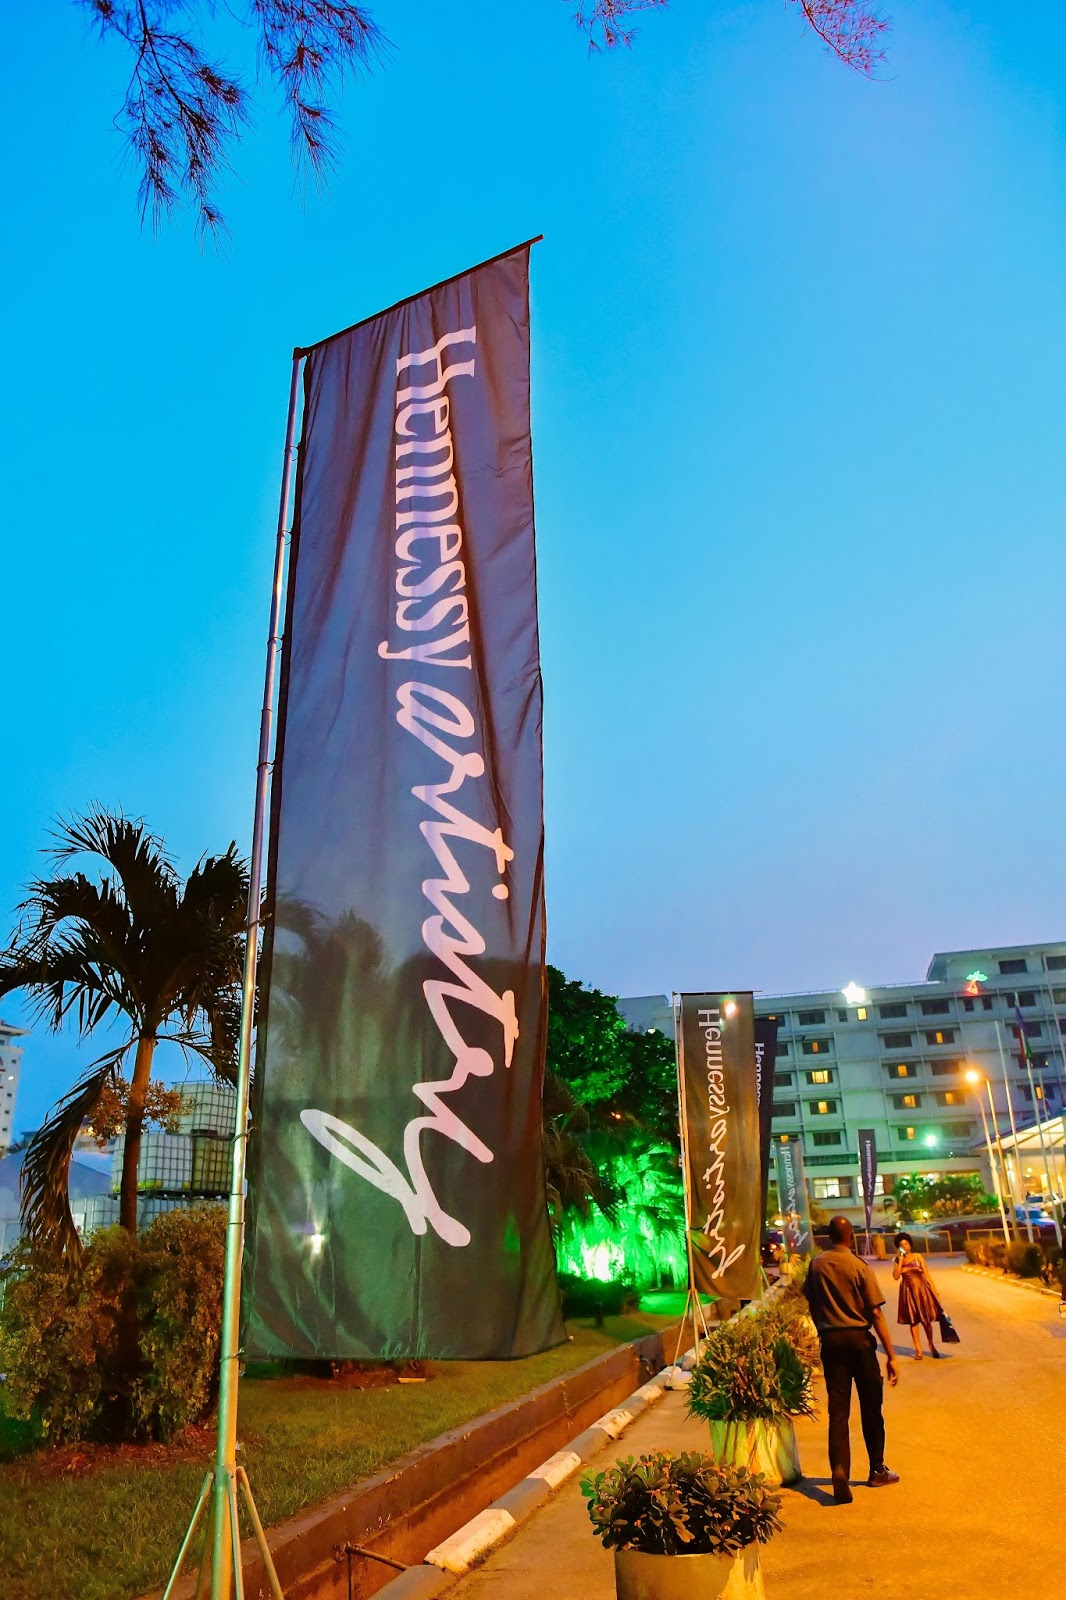 OLAMIDE, TIMAYA, FALZ, DAVIDO, BURNA BOY and MORE SHUT DOWN LAGOS WITH THE HENNESSY ARTISTRY 2018 FINALE CONCERT!